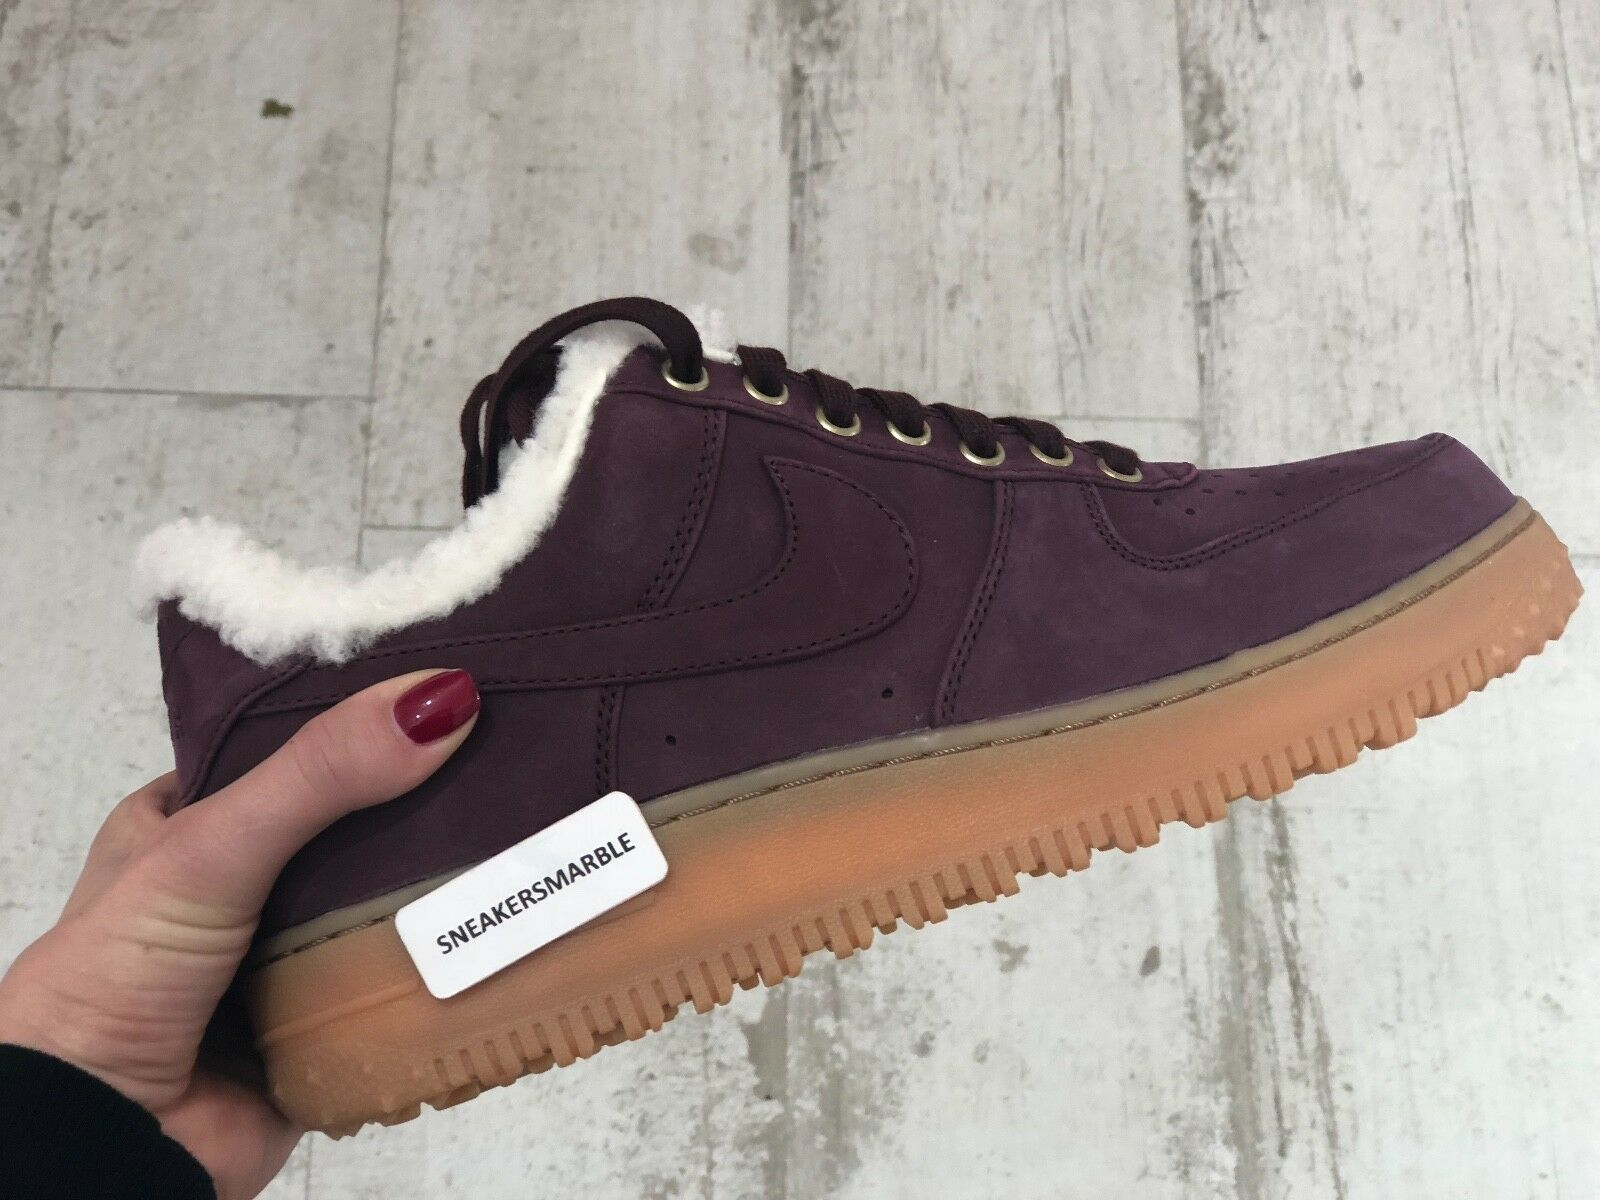 Nike Air Force 1 Premium hiver Bourgogne Crush GUM light marron AV2874-600